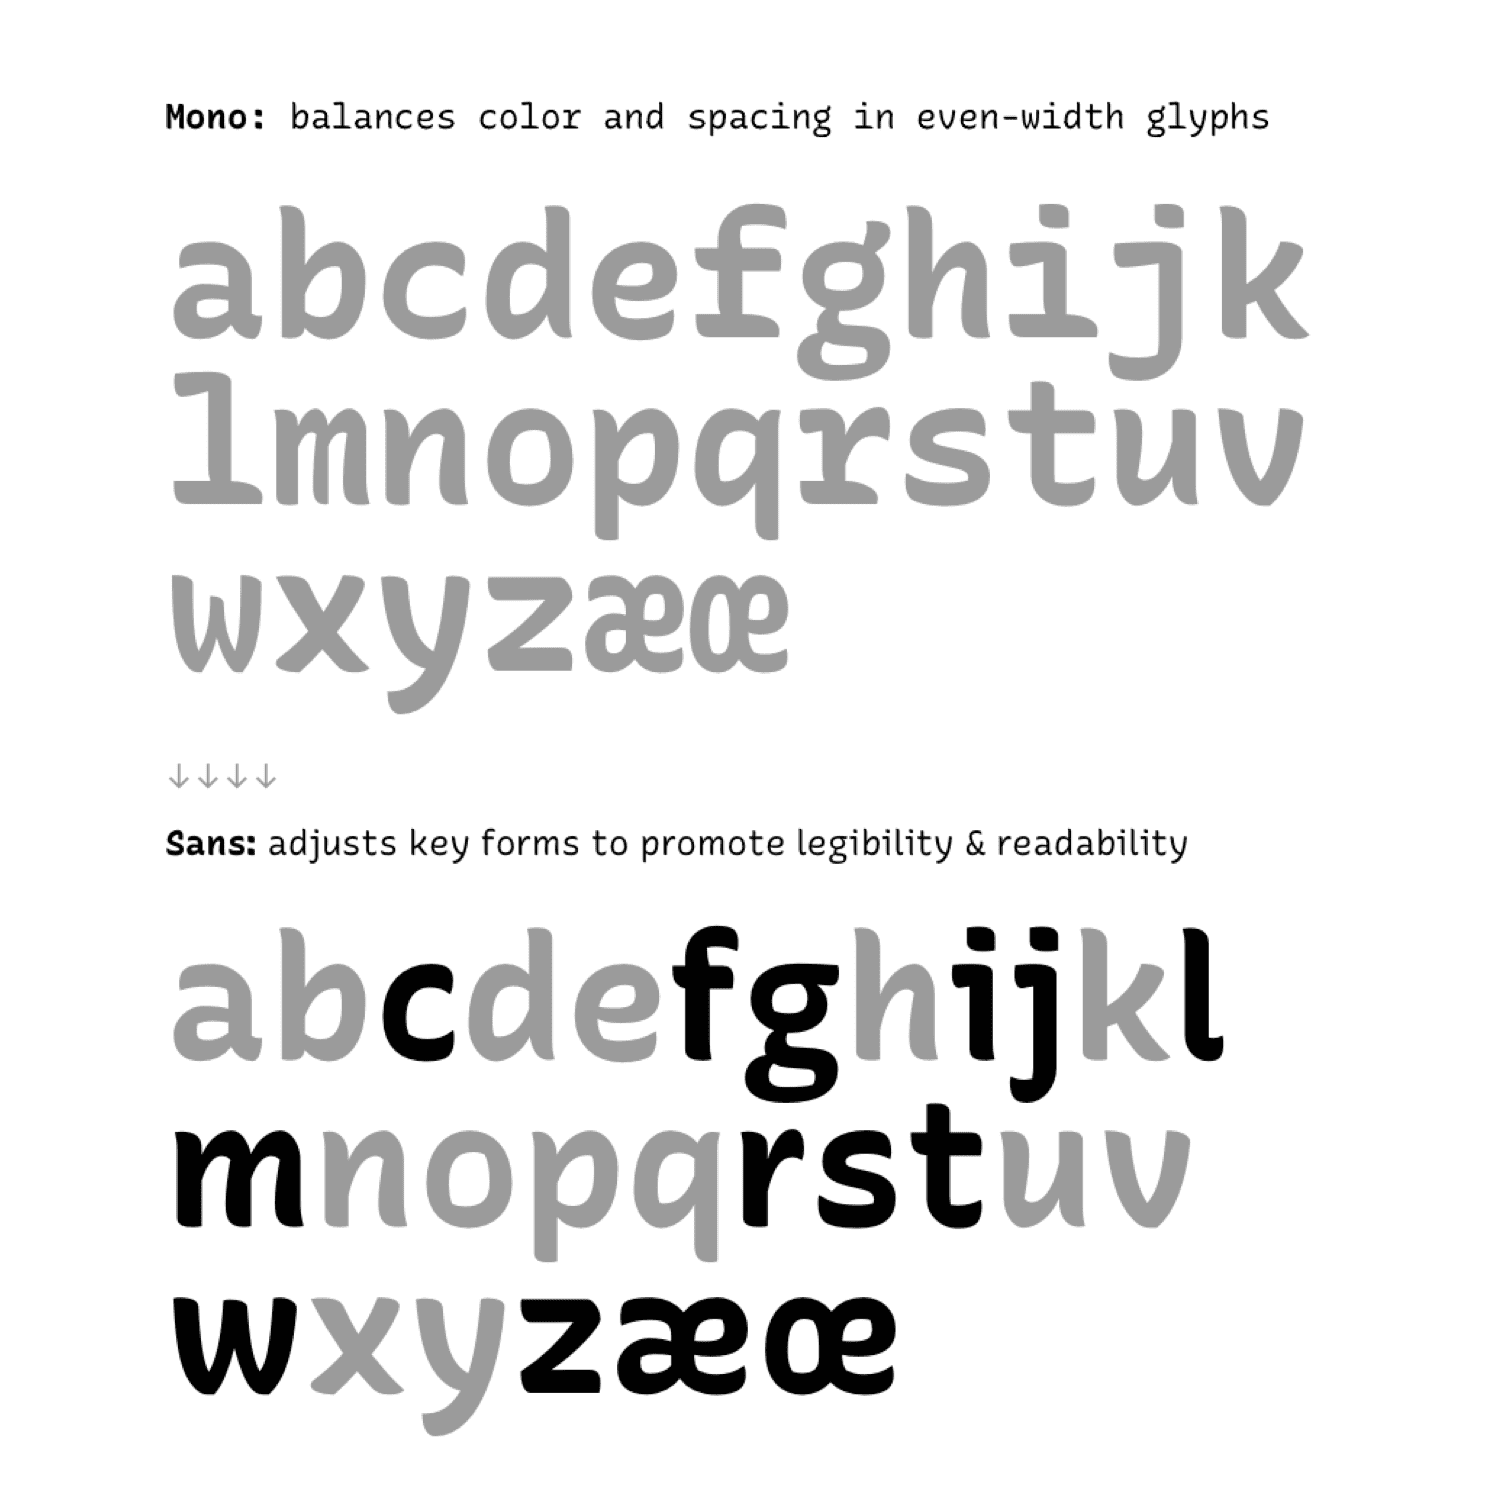 letters borrowed between recursive mono & sans, lowercase